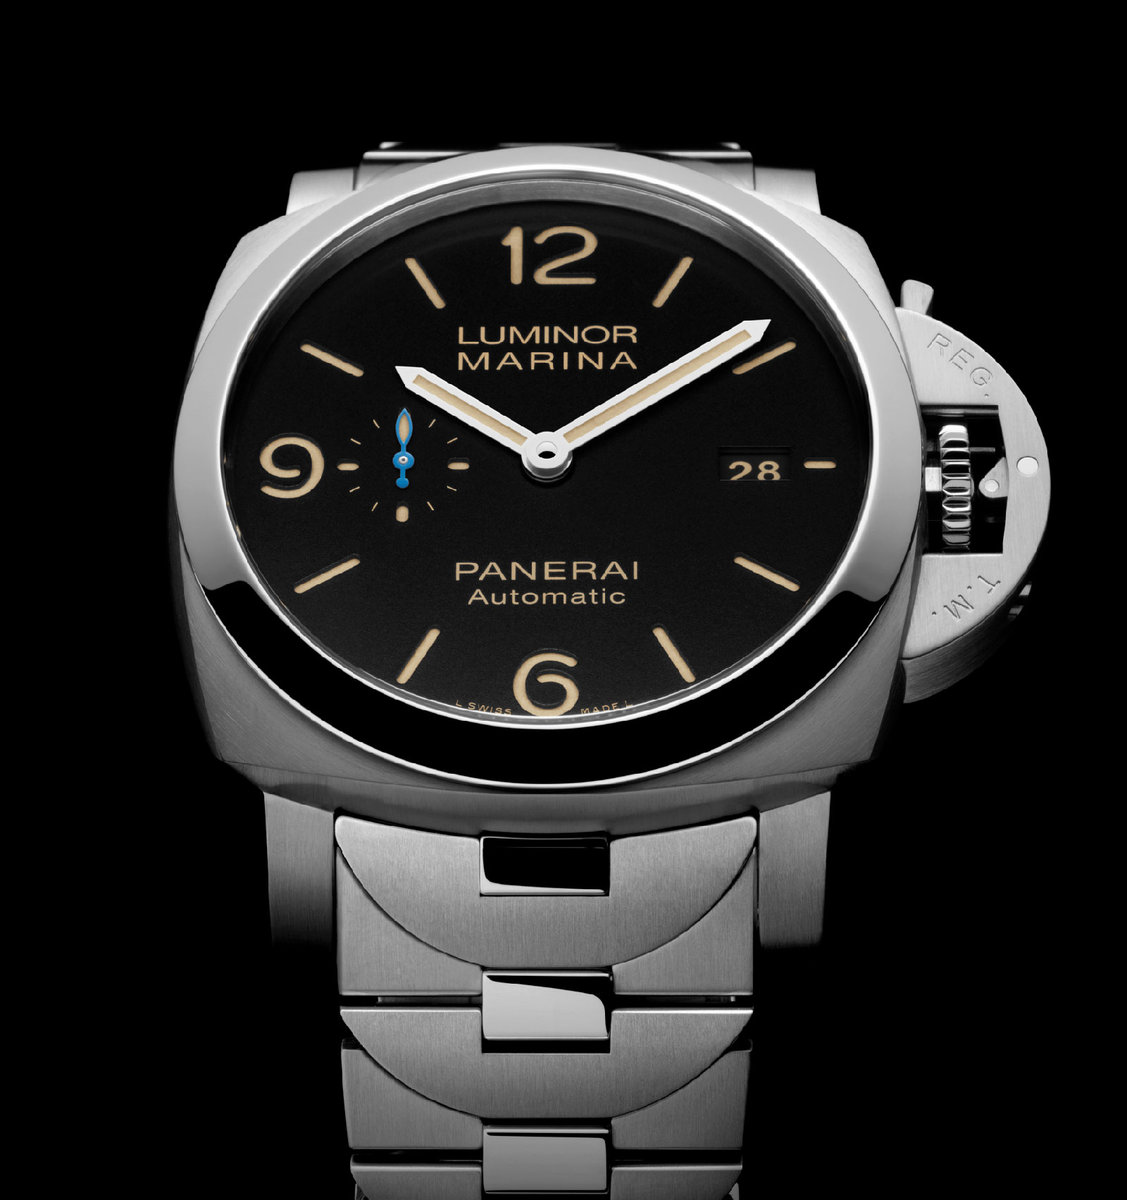 Panerai-Luminor-1950-3-Days-Automatic-bracelet-44mm-PAM723-3.jpg